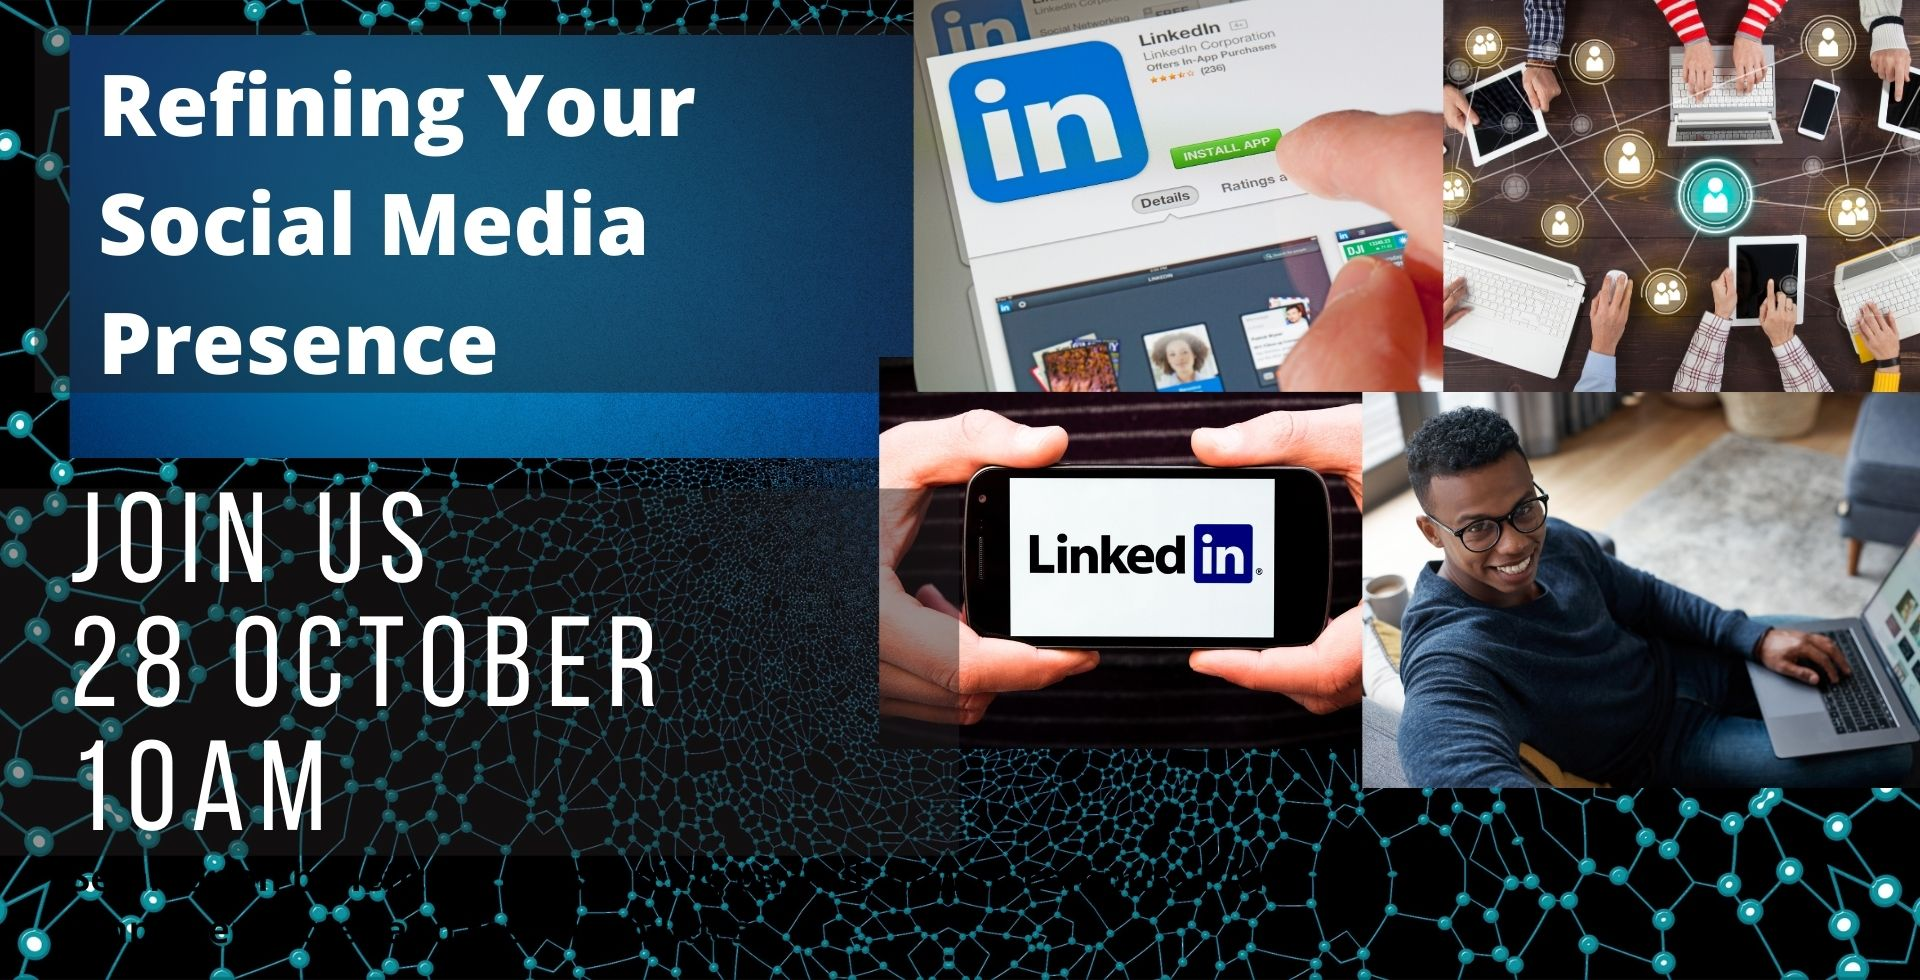 Refining your Social Media Presence, 28 Oct – 10 AM